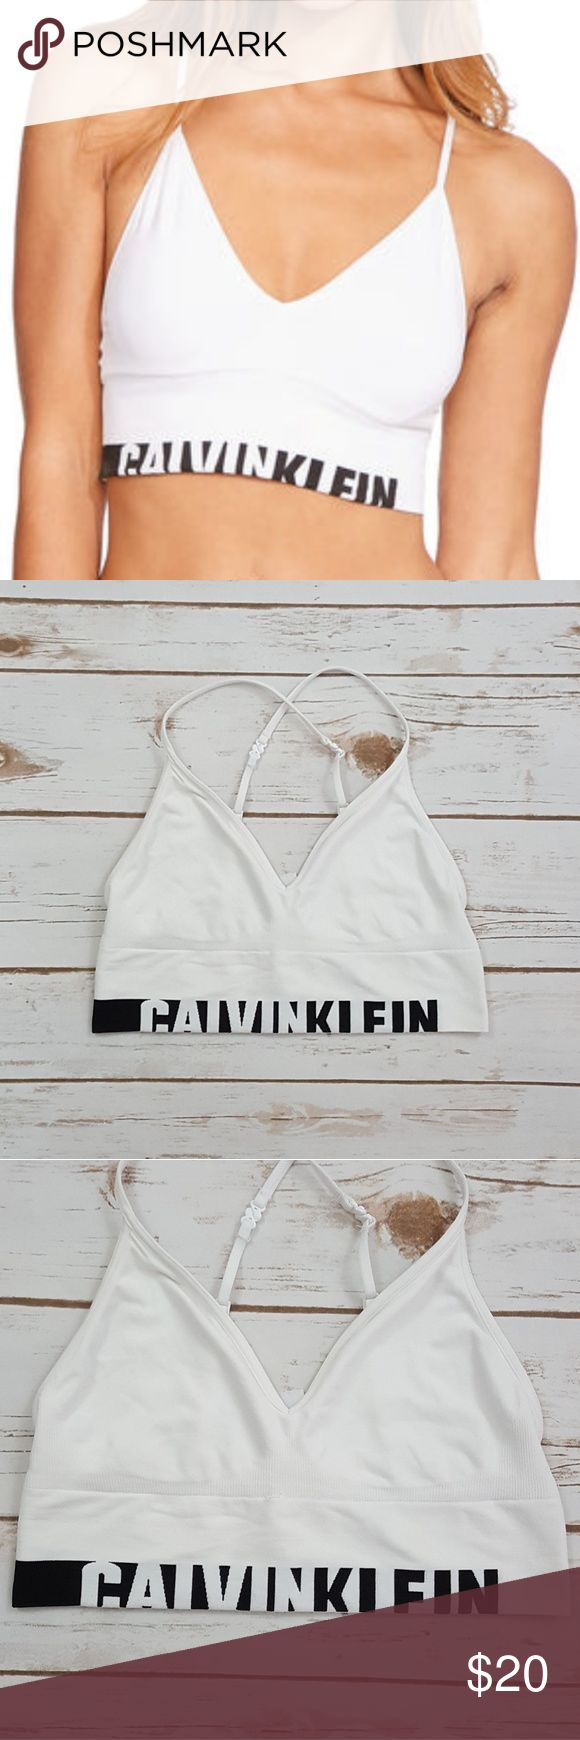 Calvin Klein Seamless Logo Bralette Unlined Calvin Klein Seamless Logo Bralette Unlined Longline Multiway White Sz Sm NWOT No padding, no wire Adjustable shoulder straps Can wear straps regularly or criss-crossed No fastening, goes over the head Calvin Klein logo band Micofiber jersey Upper body: 88% nylon, 12% elastane Lower body: 72% nylon, 22% elastane, 6% polyester Calvin Klein Intimates & Sleepwear Bras